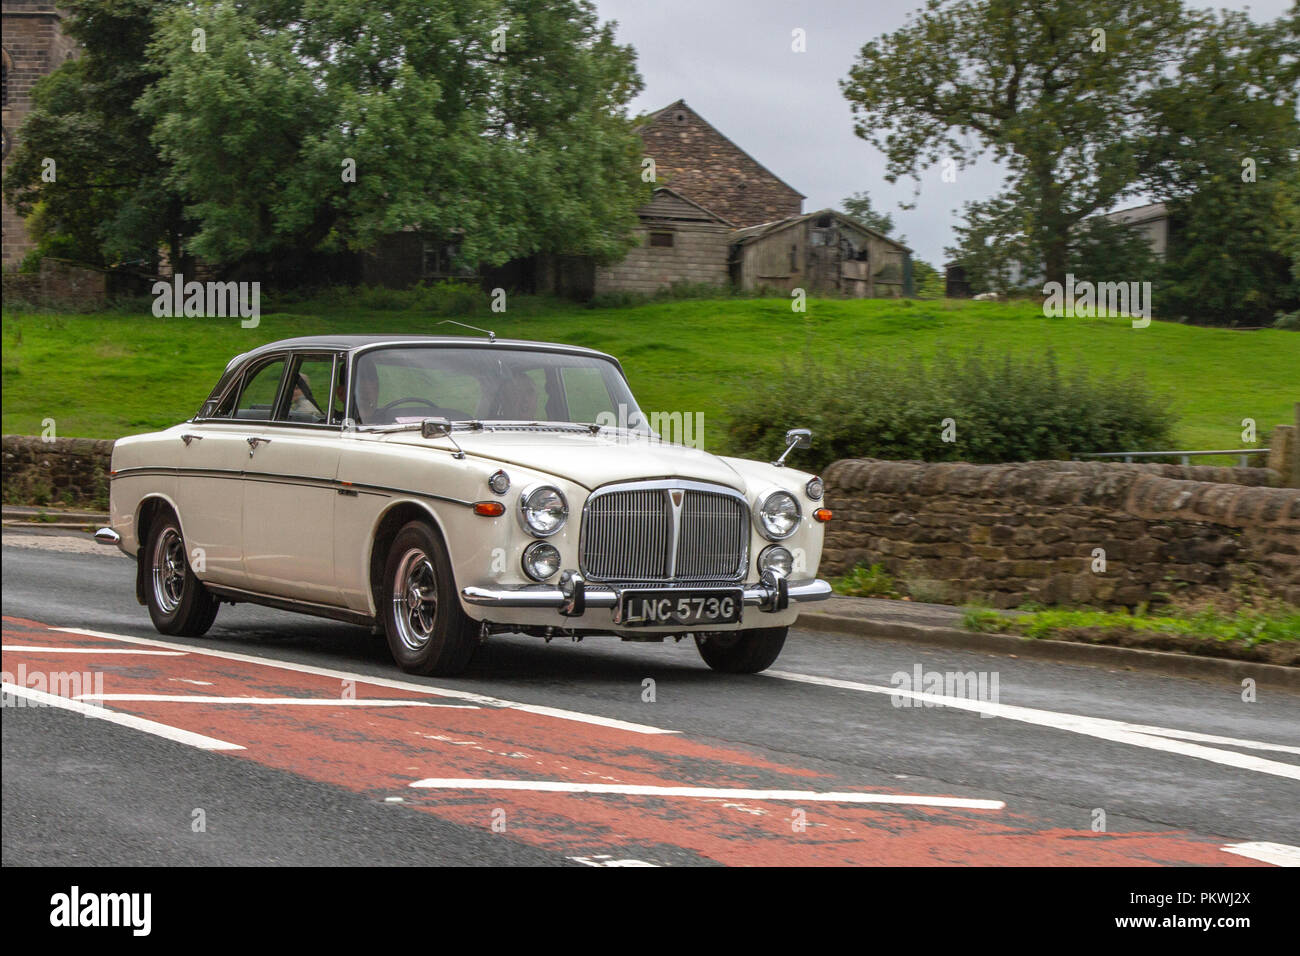 White Rover 3.5 Litre Classic, vintage, veteran, cars of yesteryear, restored collectibles at Hoghton Tower Class Cars Rally, UK - Stock Image